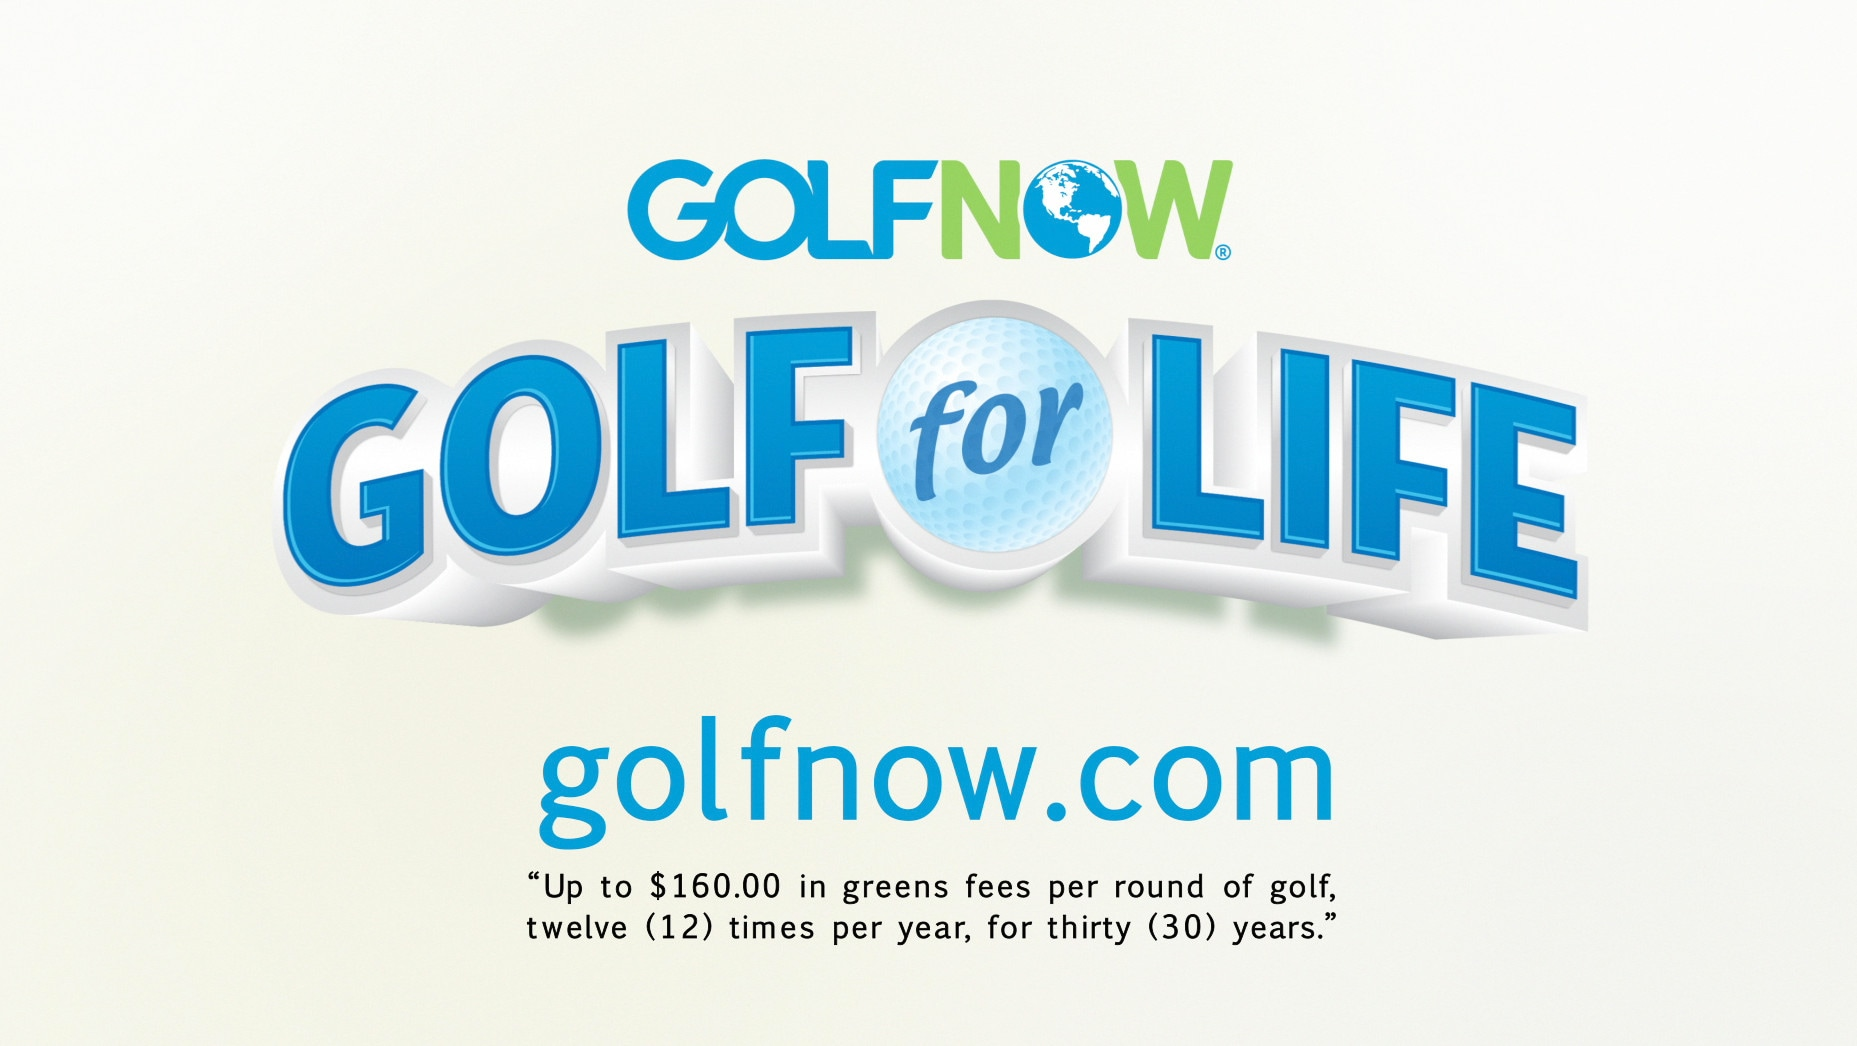 Free Golf for Life: GolfNow.com | Golf Channel Golfnow